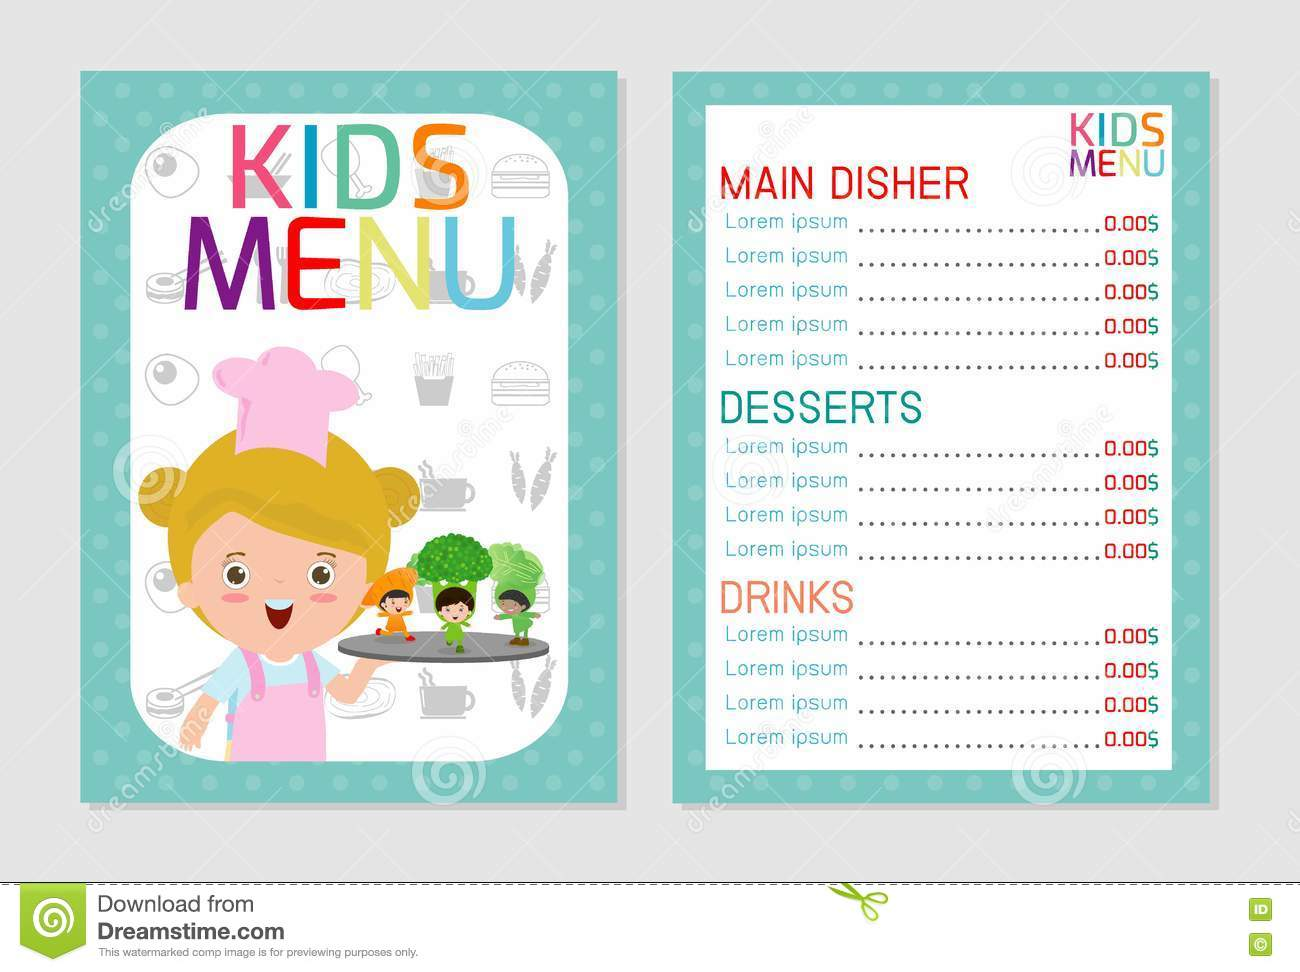 Cute colorful kids meal menu vector template, kids menu, Cute colorful kids meal menu design